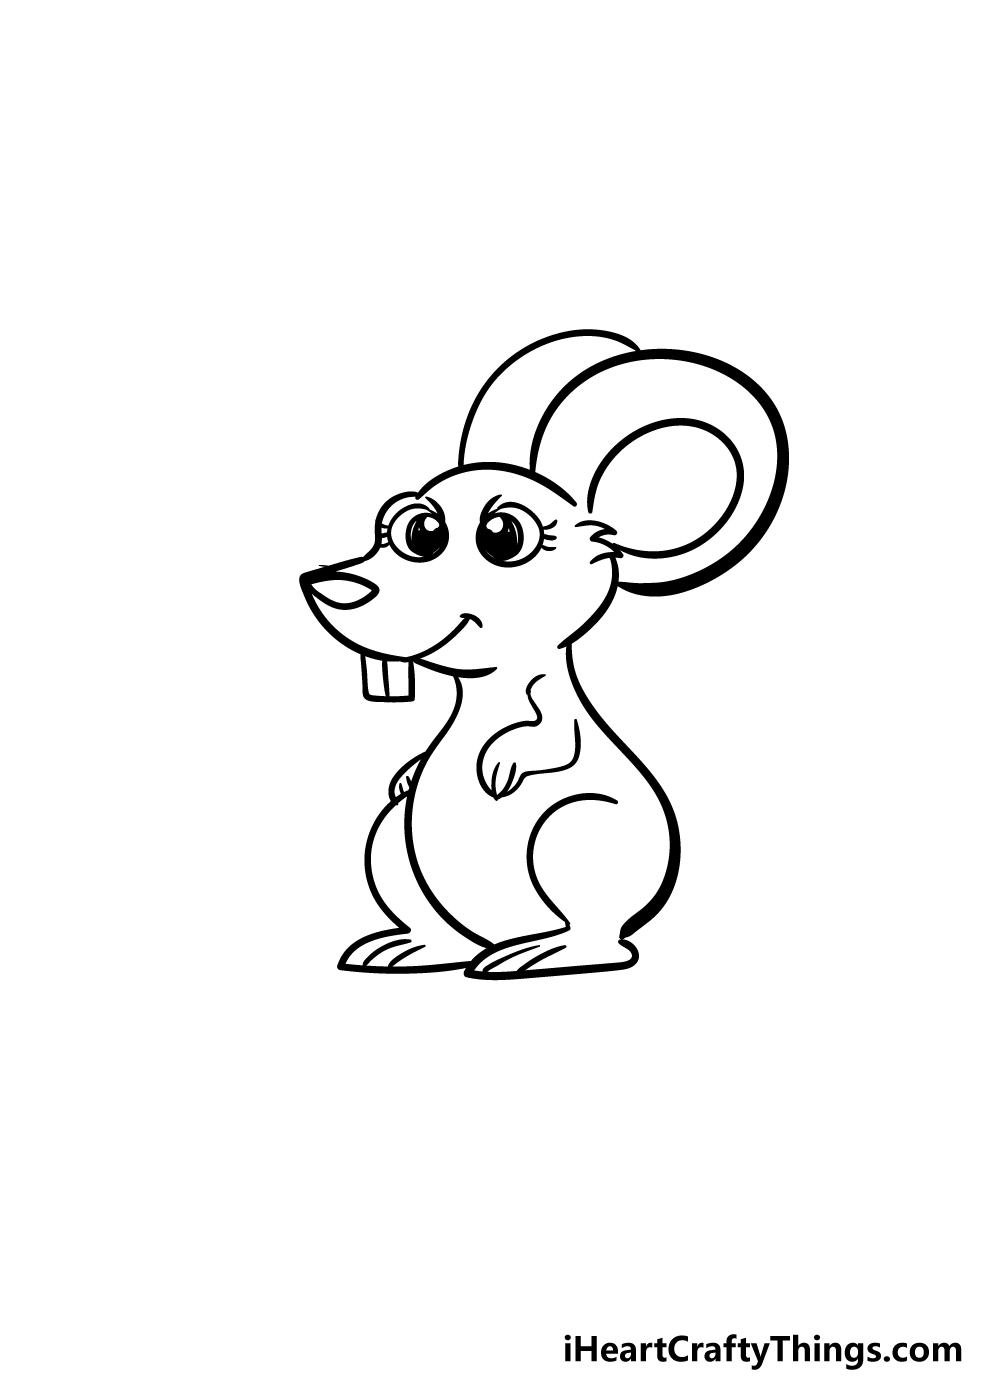 mouse drawing step 6